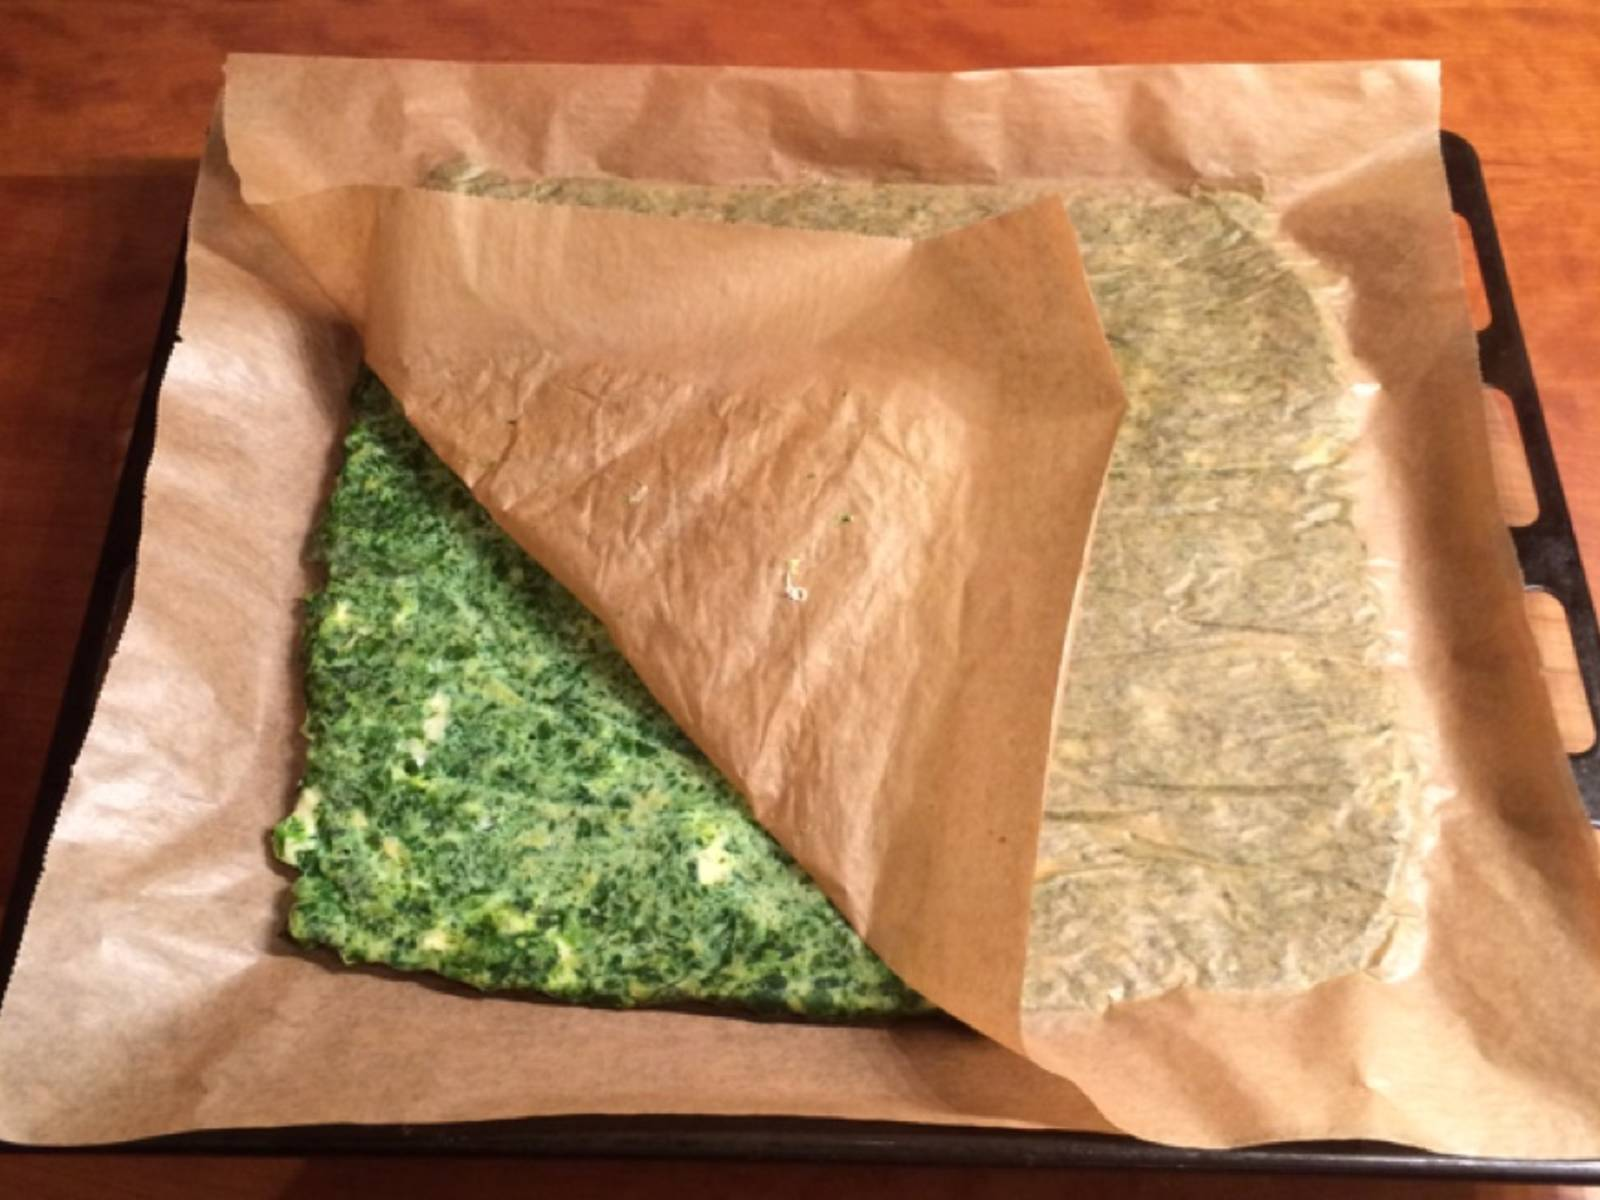 Take another sheet of parchment paper to carefully turn the spinach layer upside down. Gently peel off the first sheet of parchment paper. Bake again for approx. 10 min.